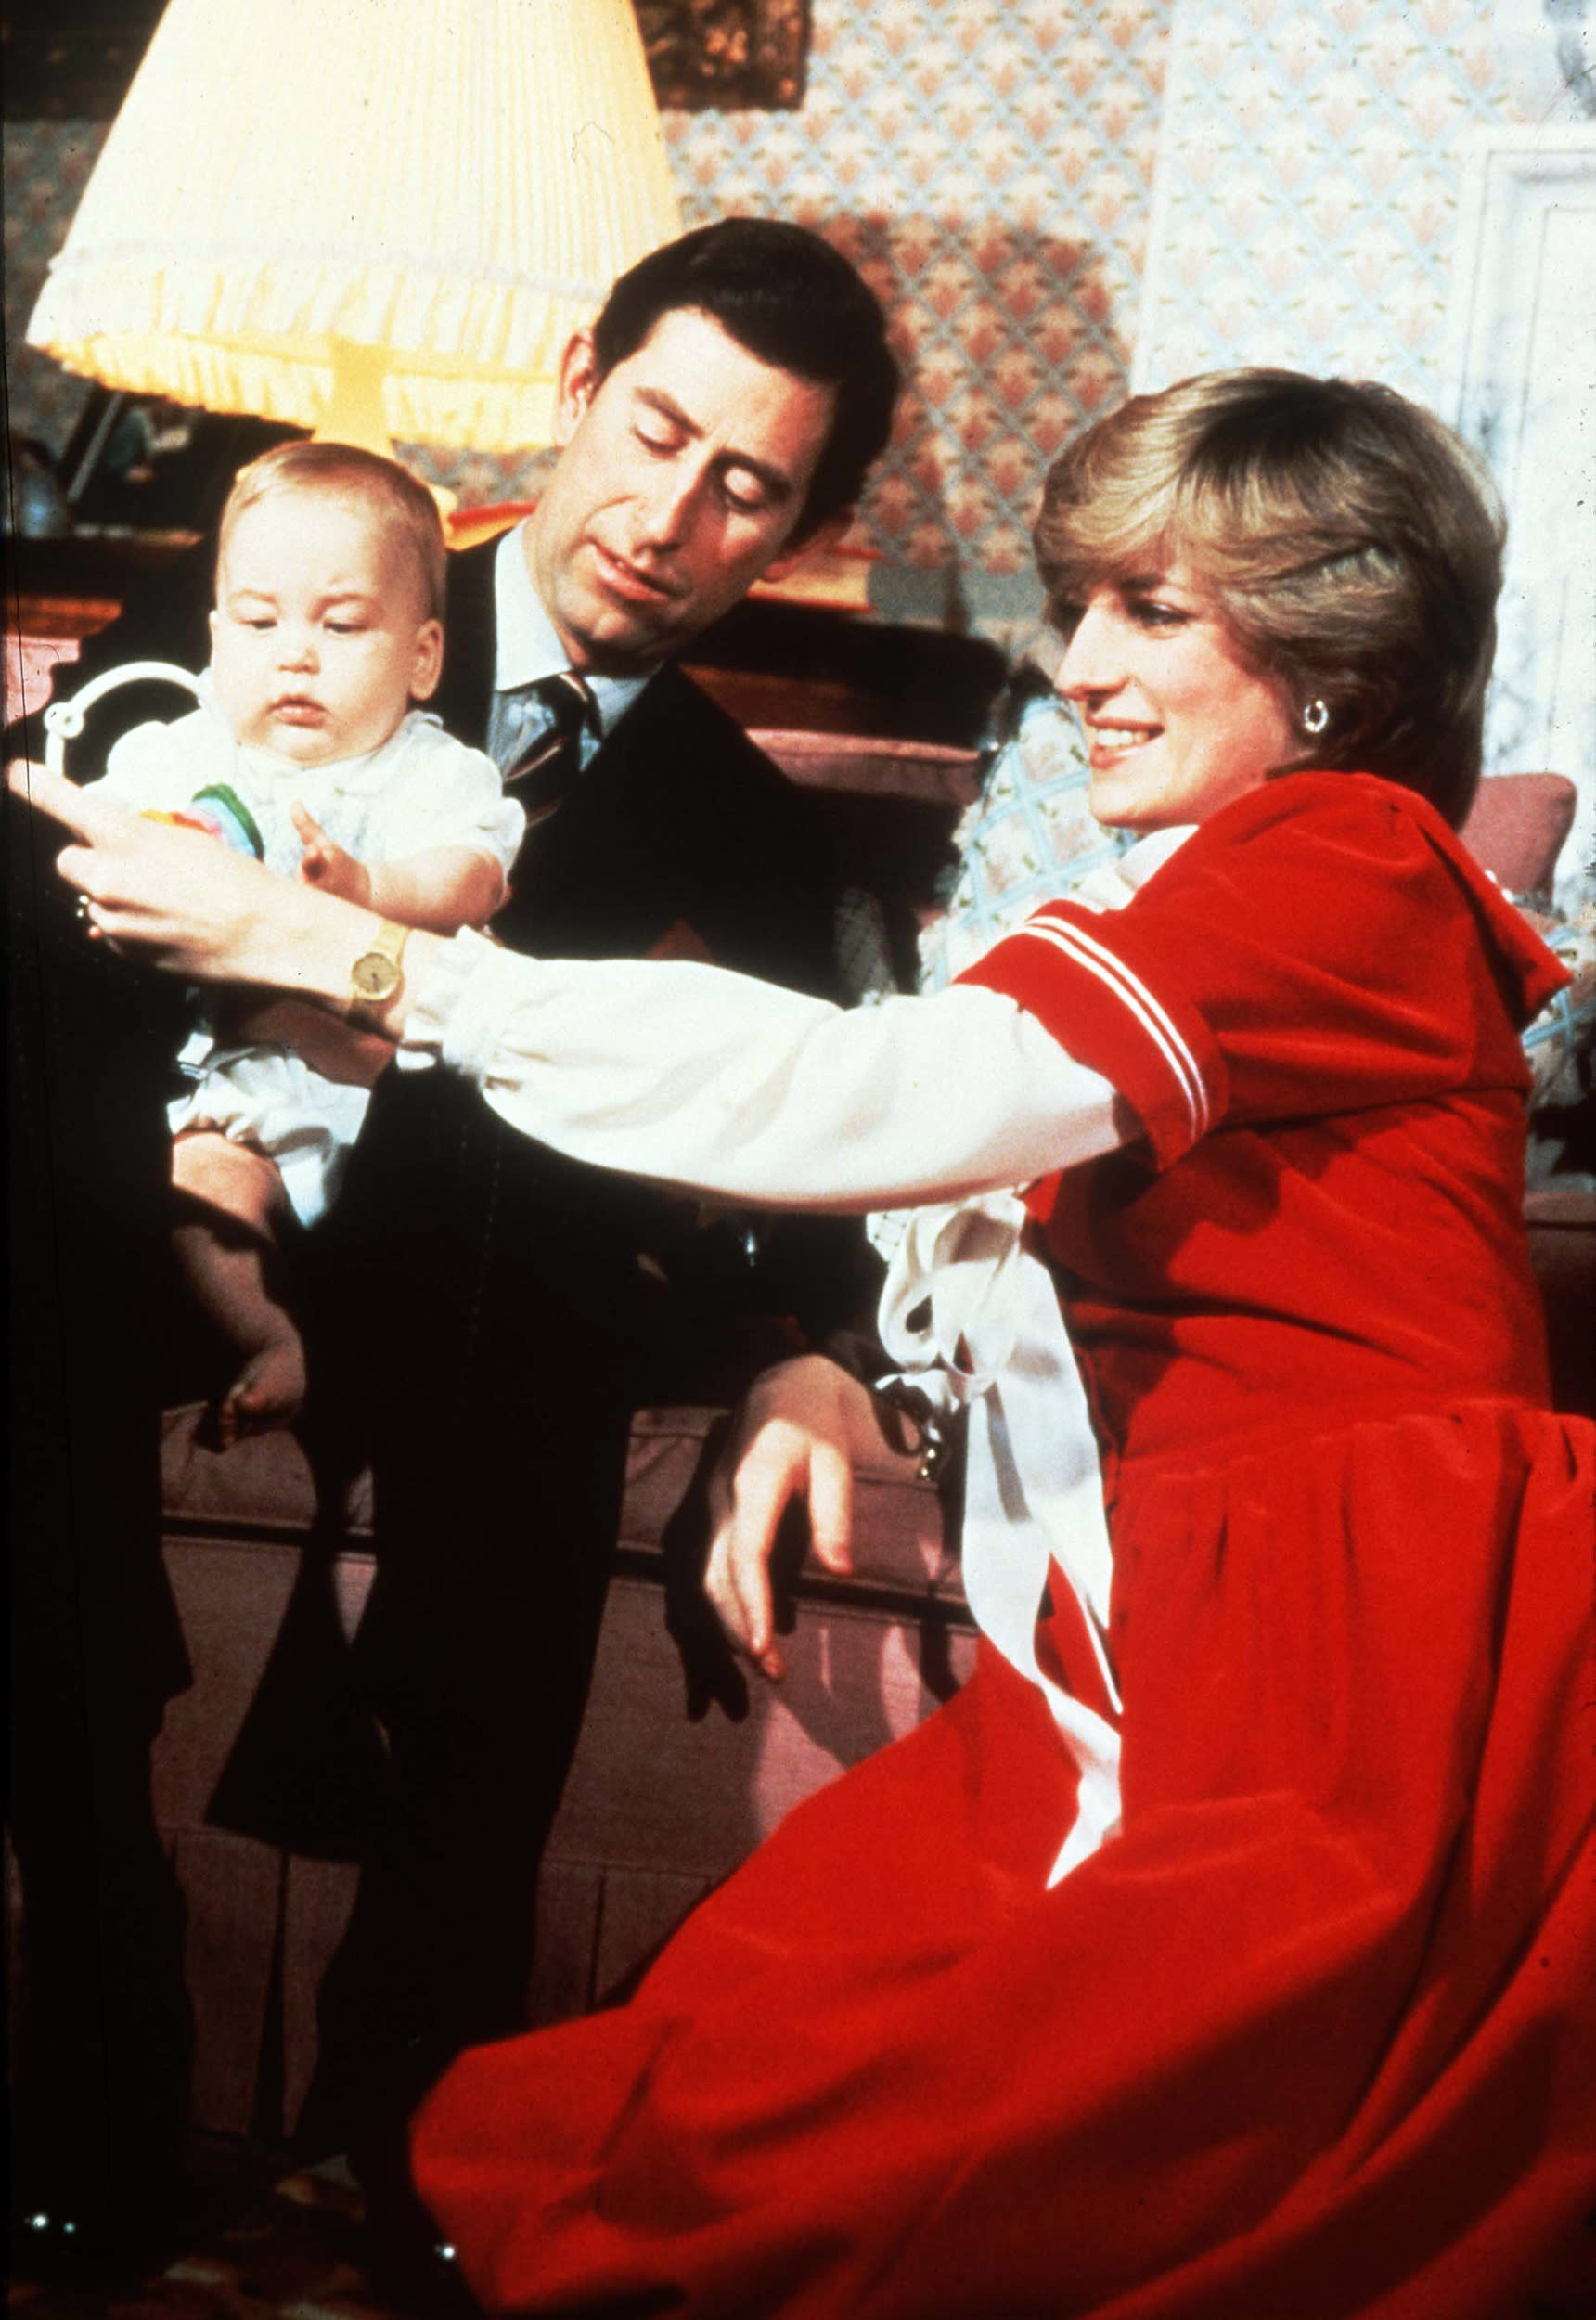 LONDON -DECEMBER 01:  Princess Diana, Princess of Wales and Prince Charles, Prince of Wales pose with their baby son Prince William during the Christmas season at Kensington Palace on December 01, 1982 in London, England. (Photo by Anwar Hussein/Getty Images)